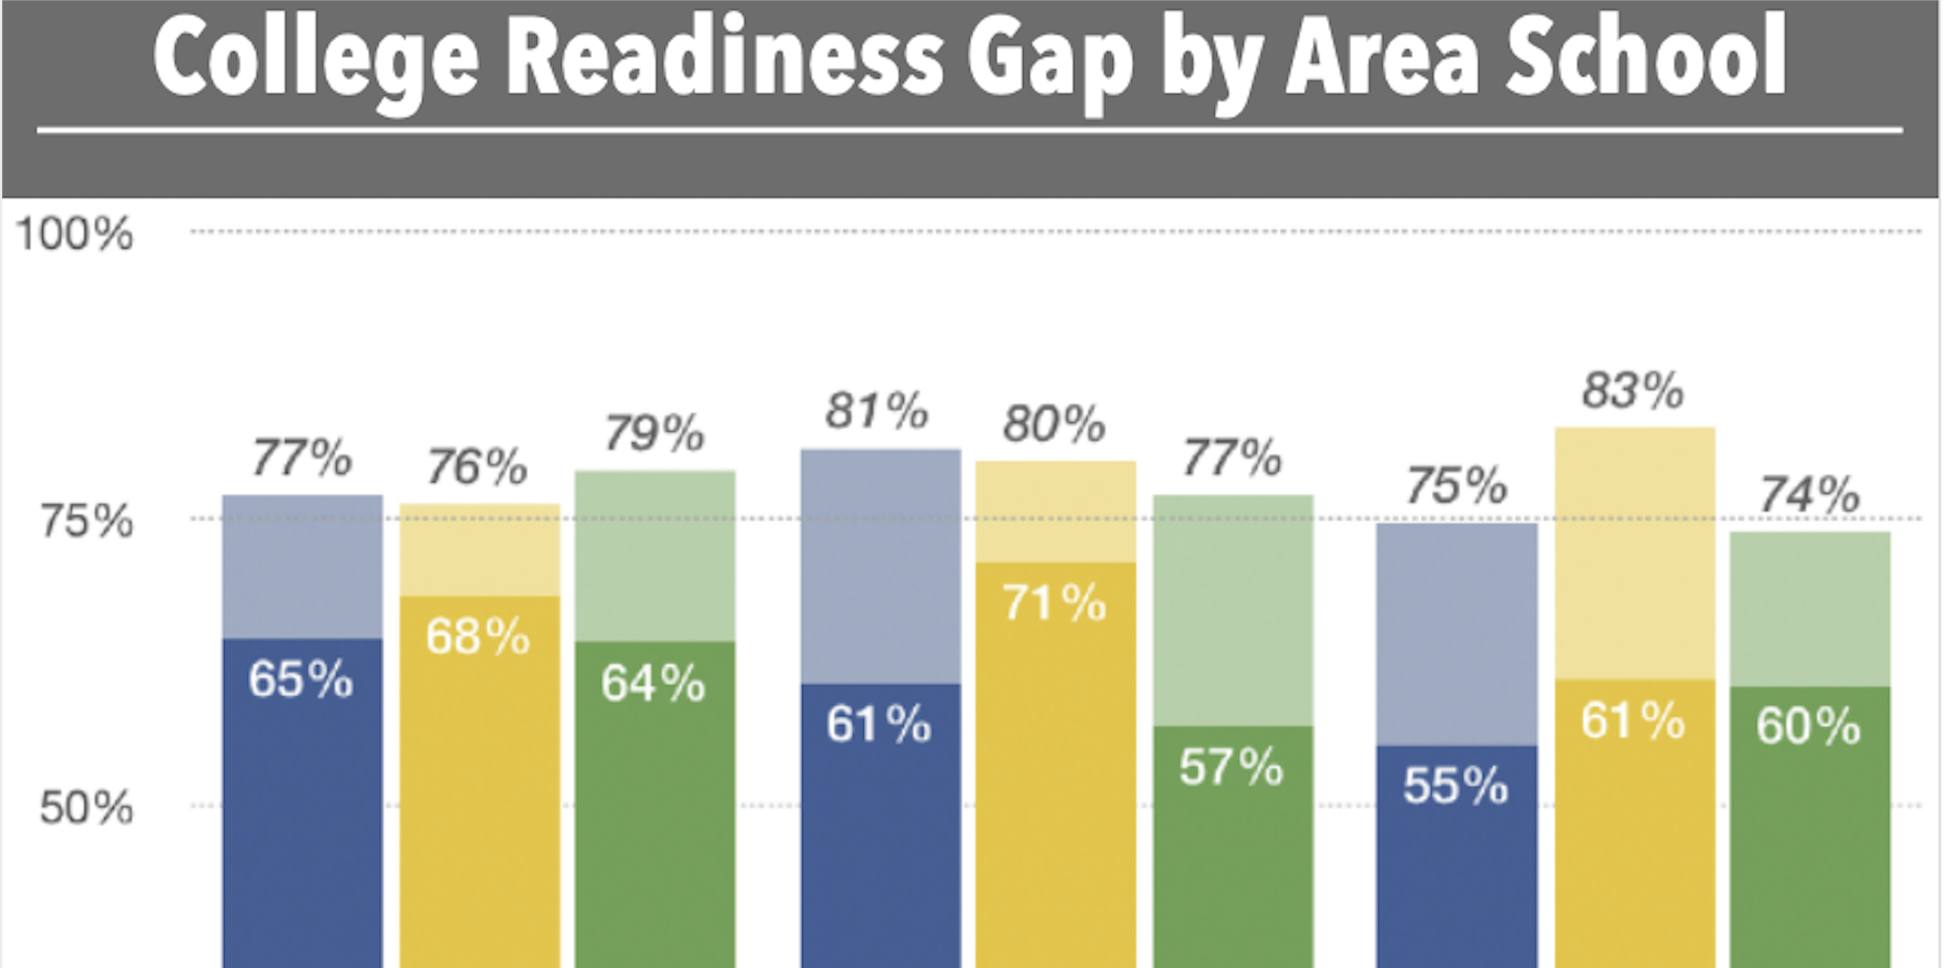 College Readiness Gap